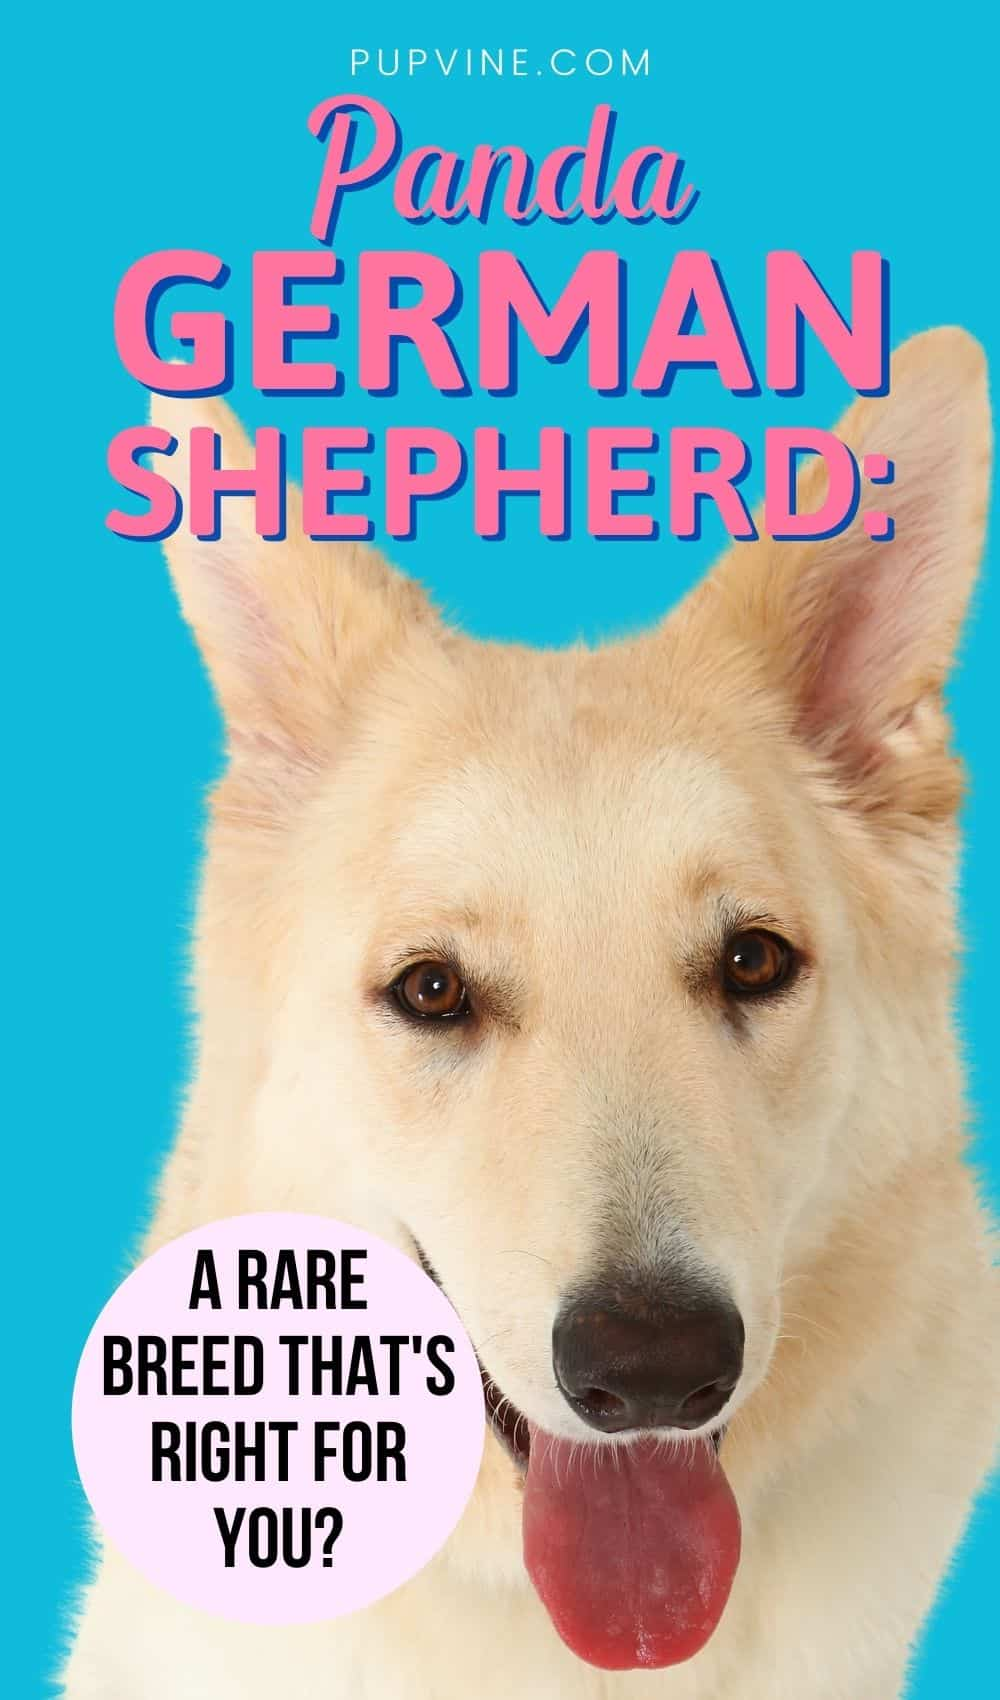 Panda German Shepherd: A Rare Breed That's Right For You?